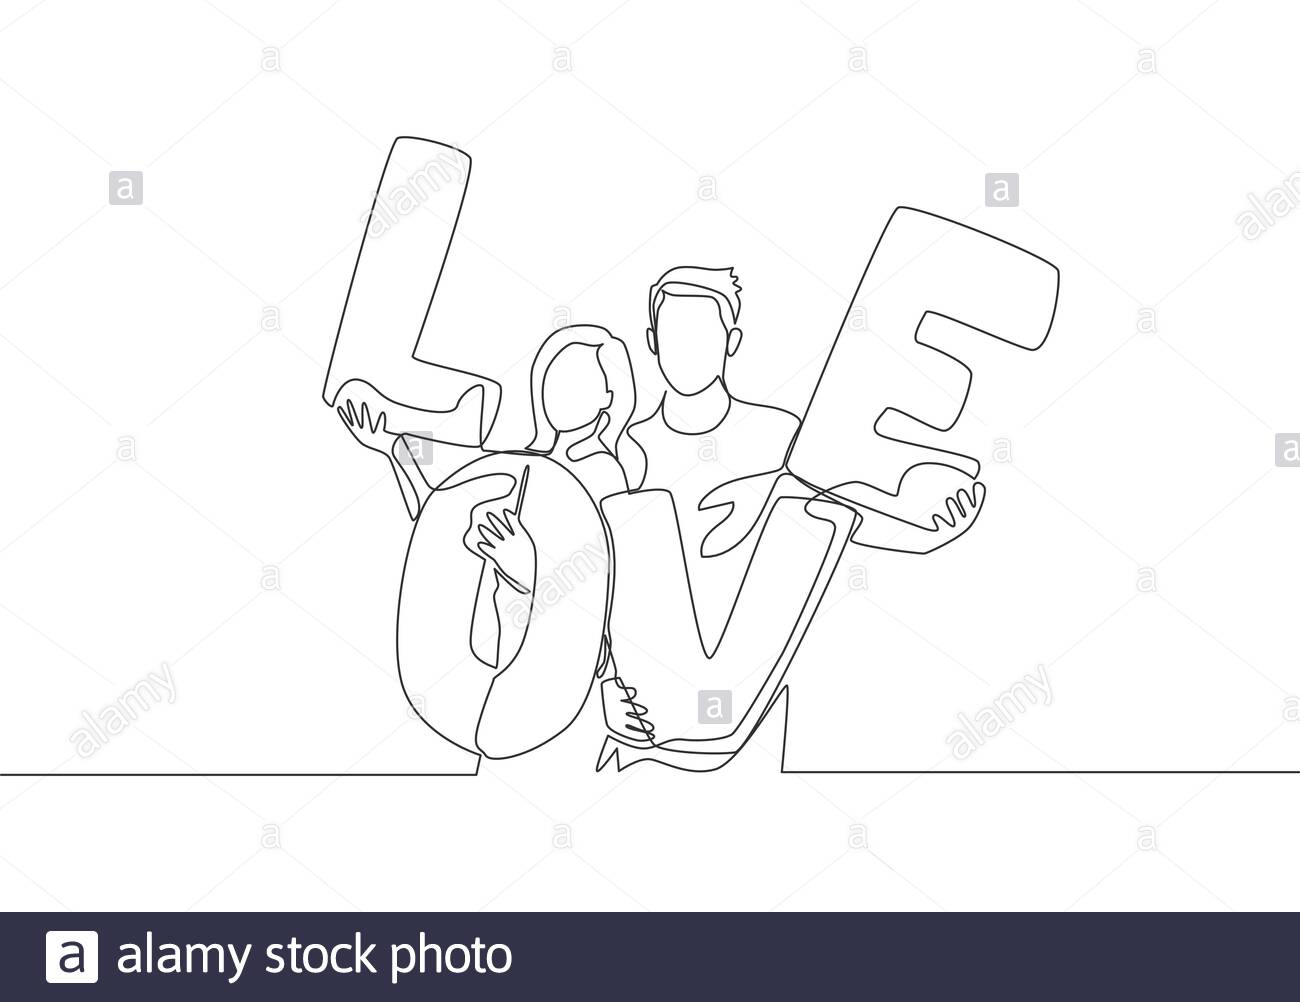 Marriage And Romance Love Letter from c8.alamy.com